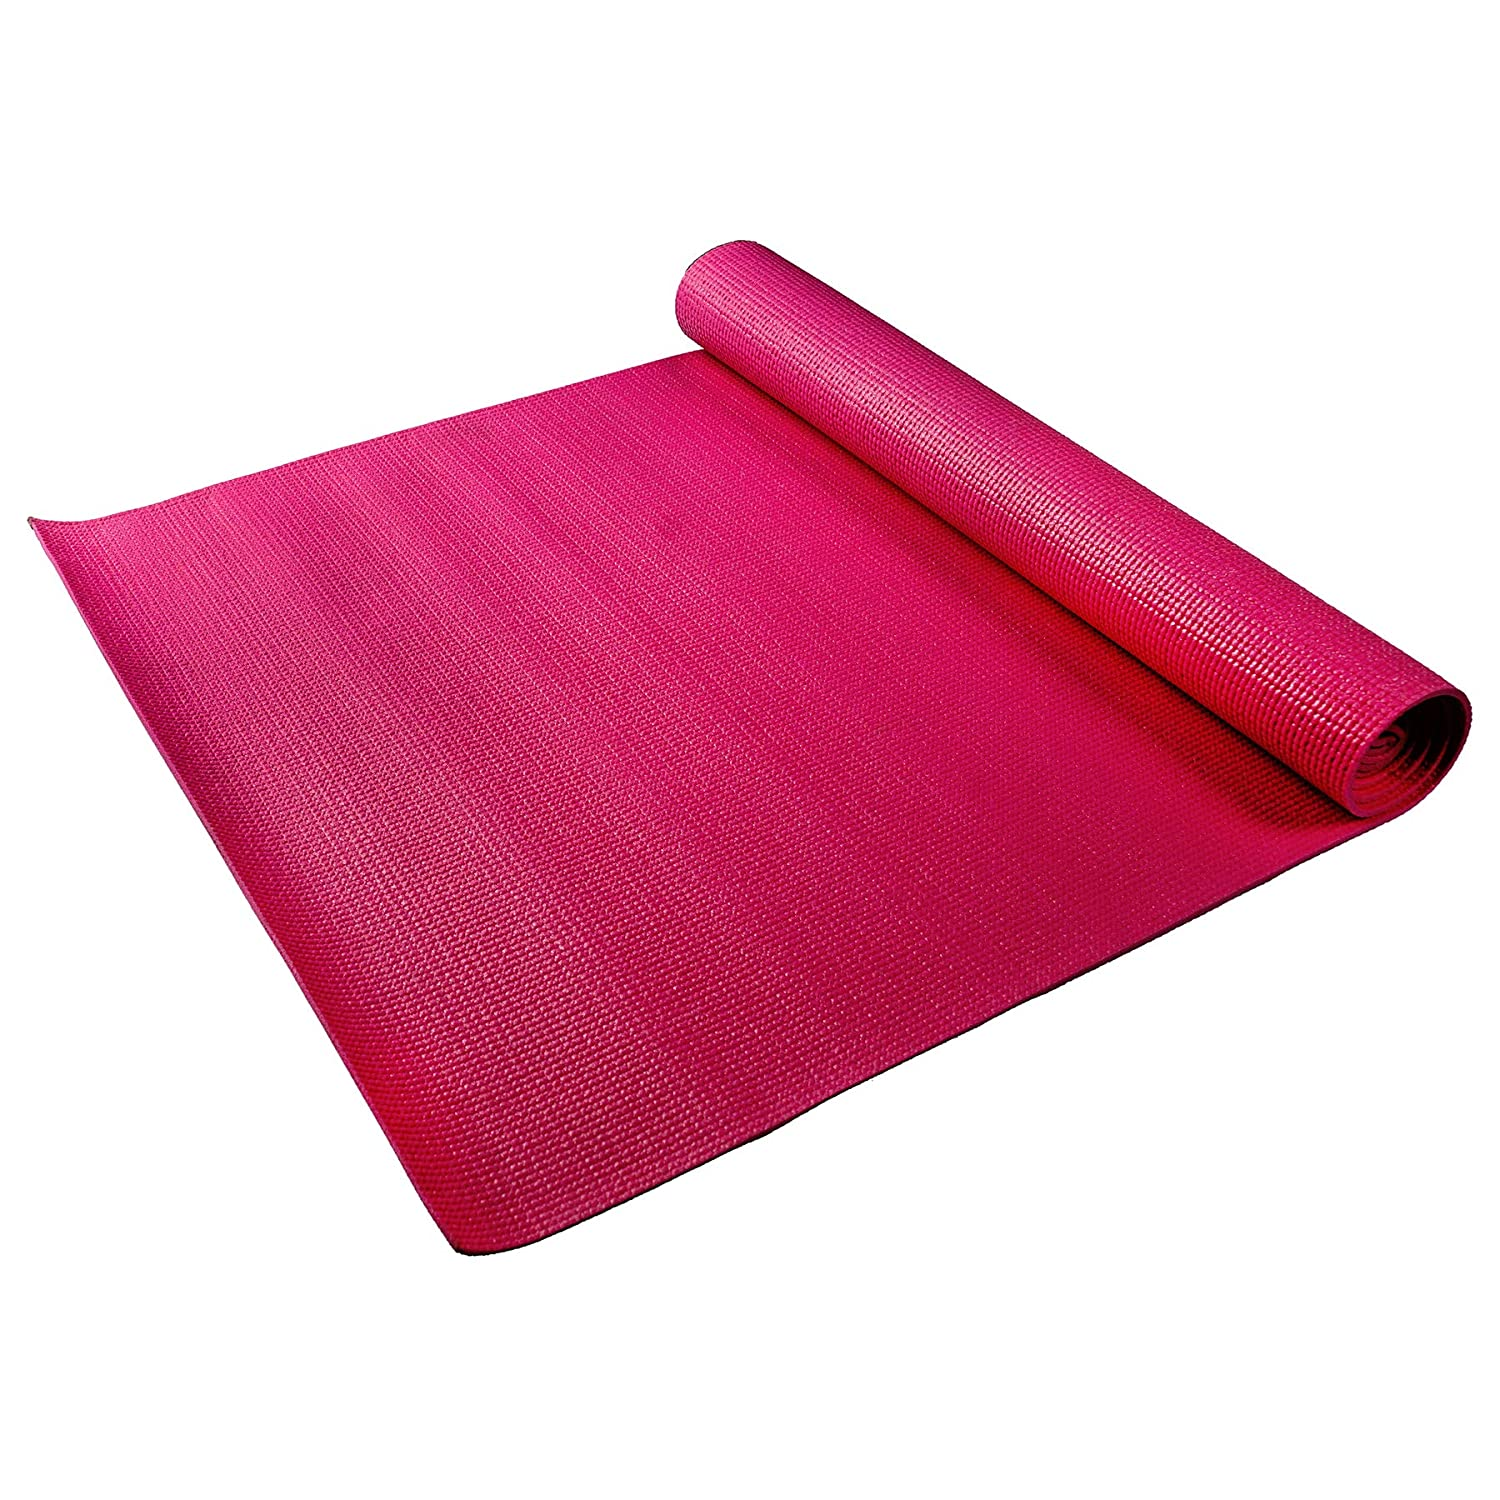 Yoga Mat - Best Quality